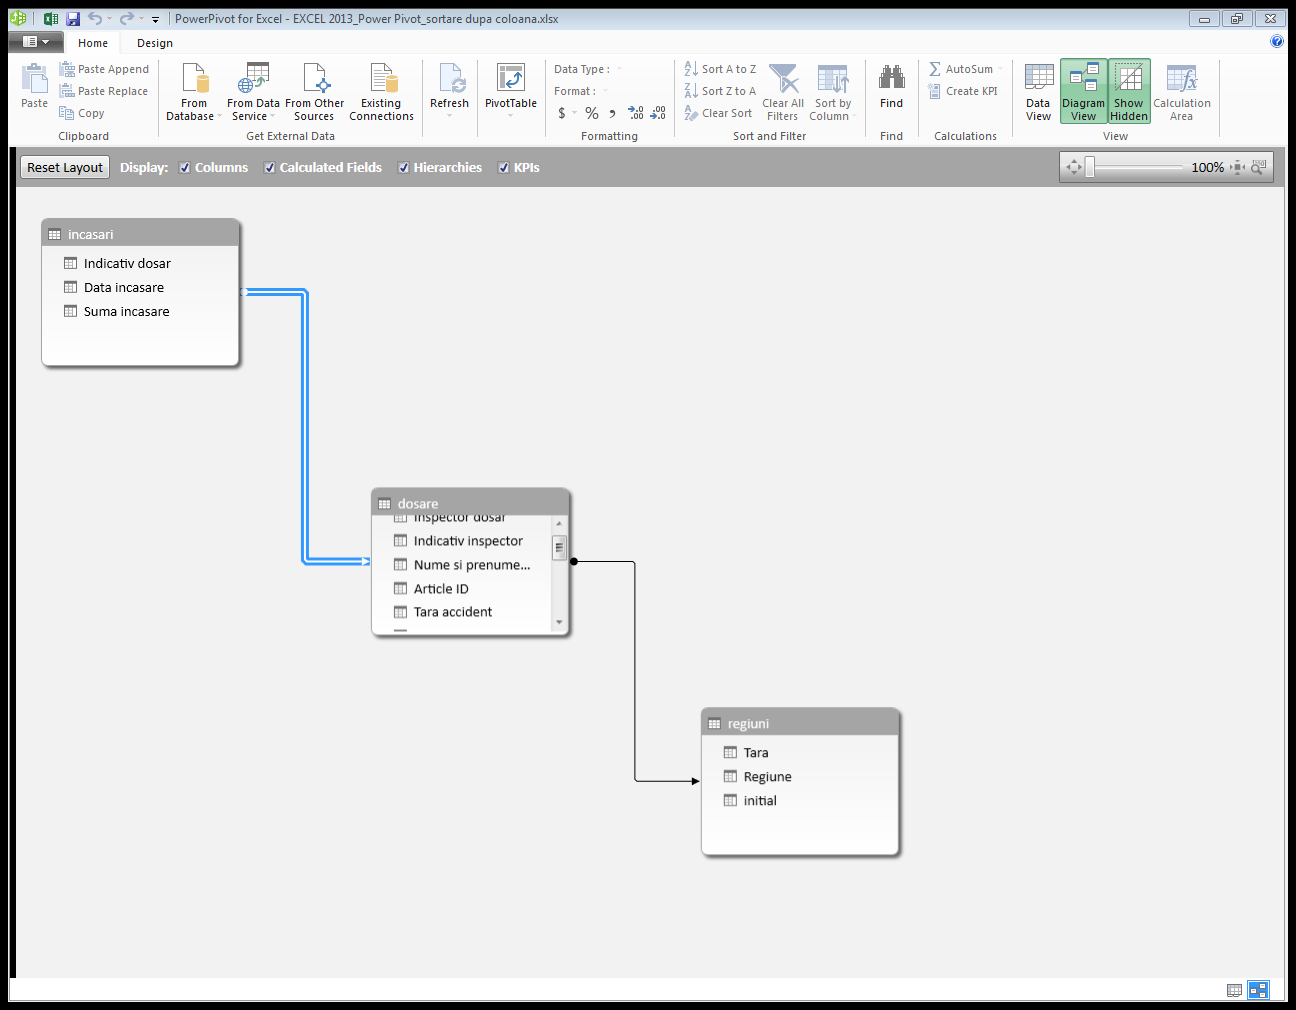 Power Pivot - Data Model, Diagram View - Microsoft Excel 2013